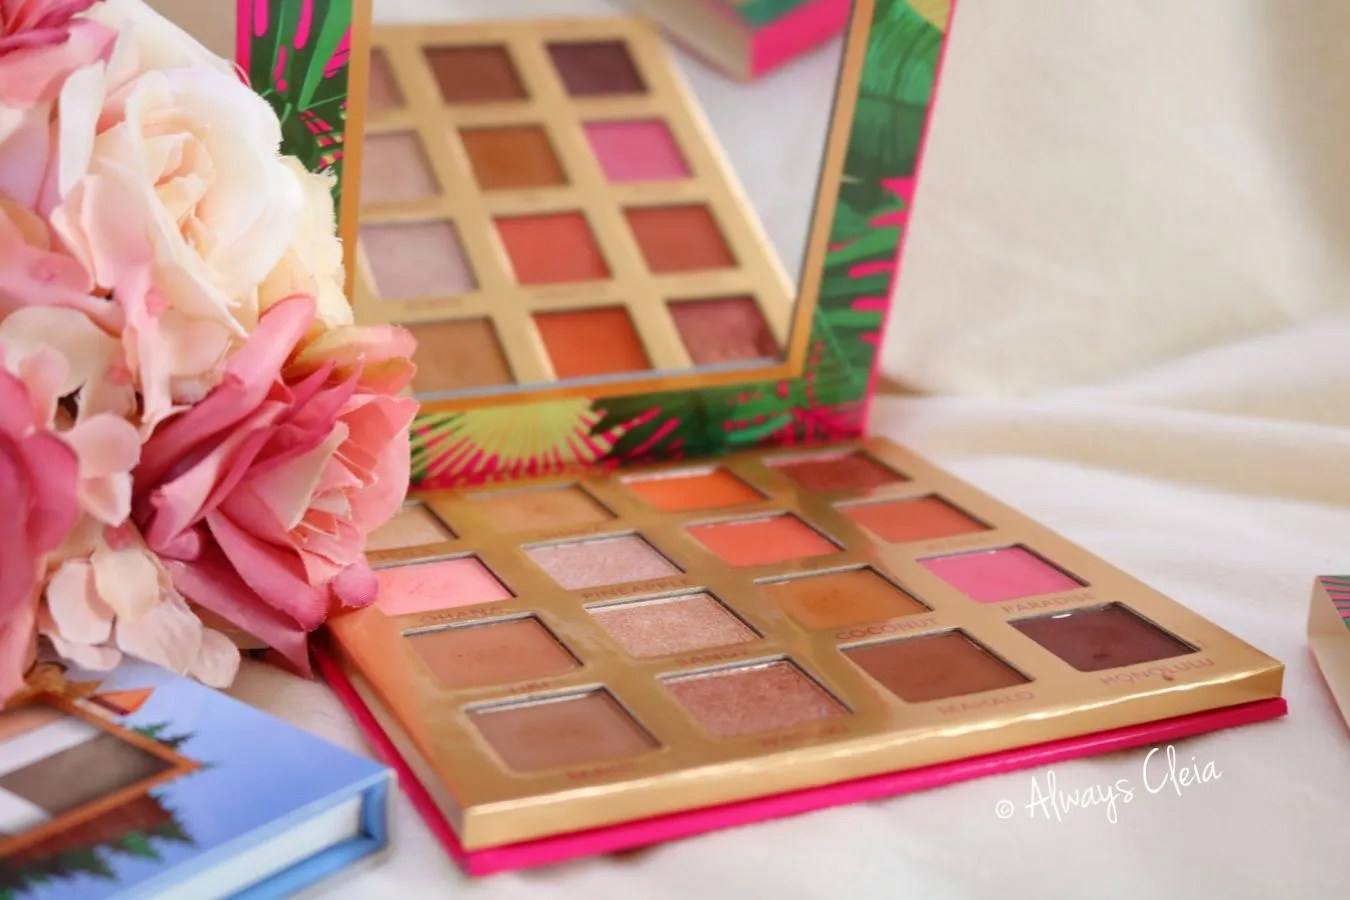 Bh Cosmetics Hanging in Hawaii Palette Review